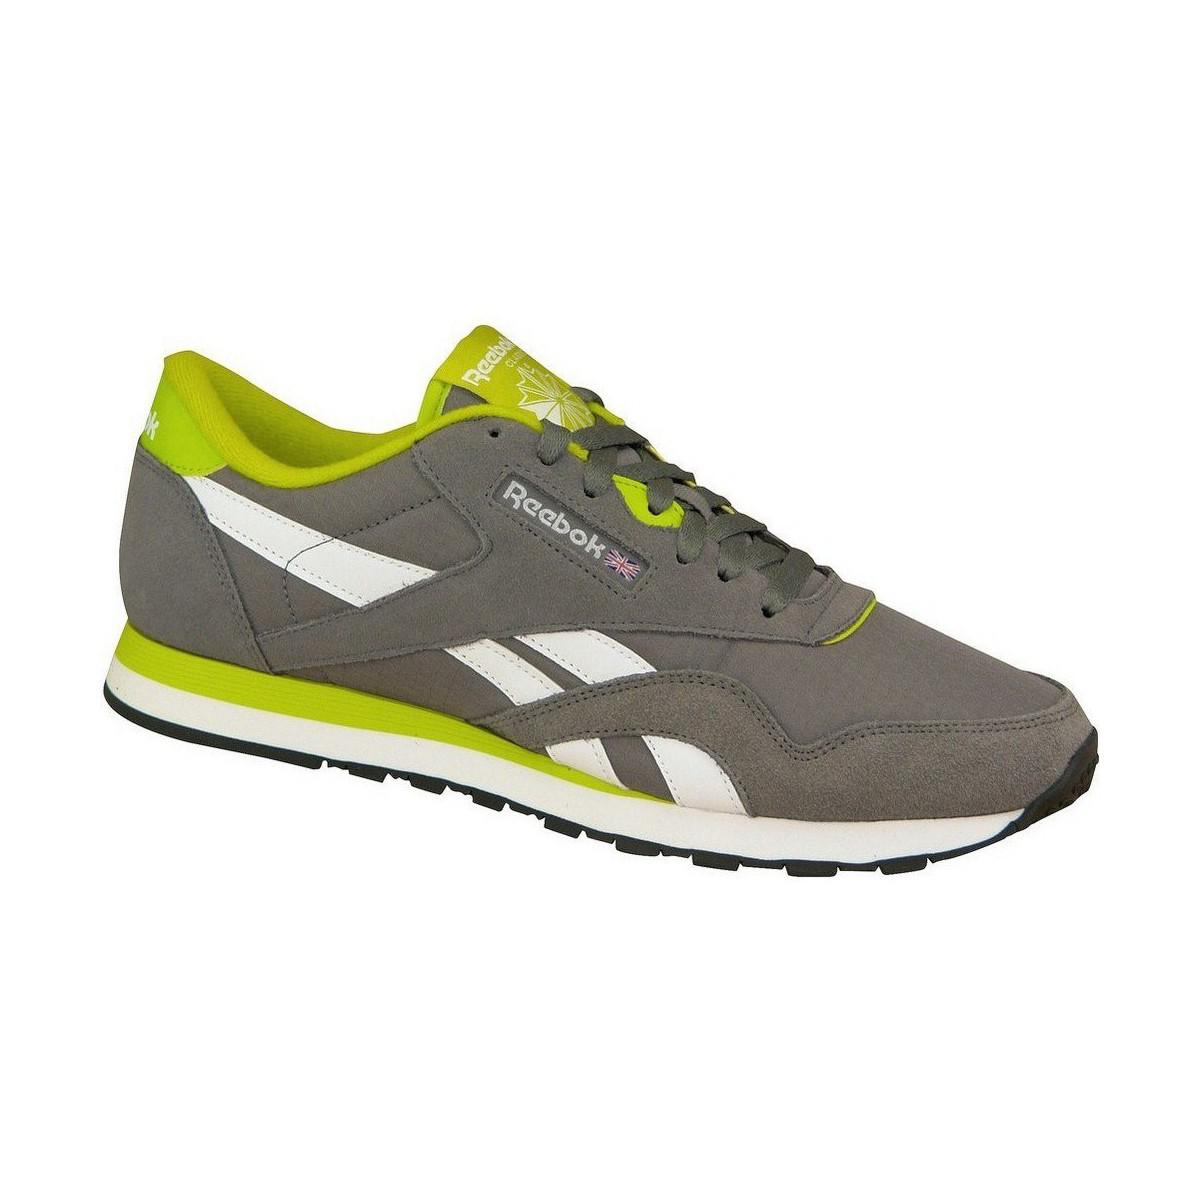 afbaecda265406 Reebok - Gray Classic Nylon Rs Men s Shoes (trainers) In Grey for Men -.  View fullscreen